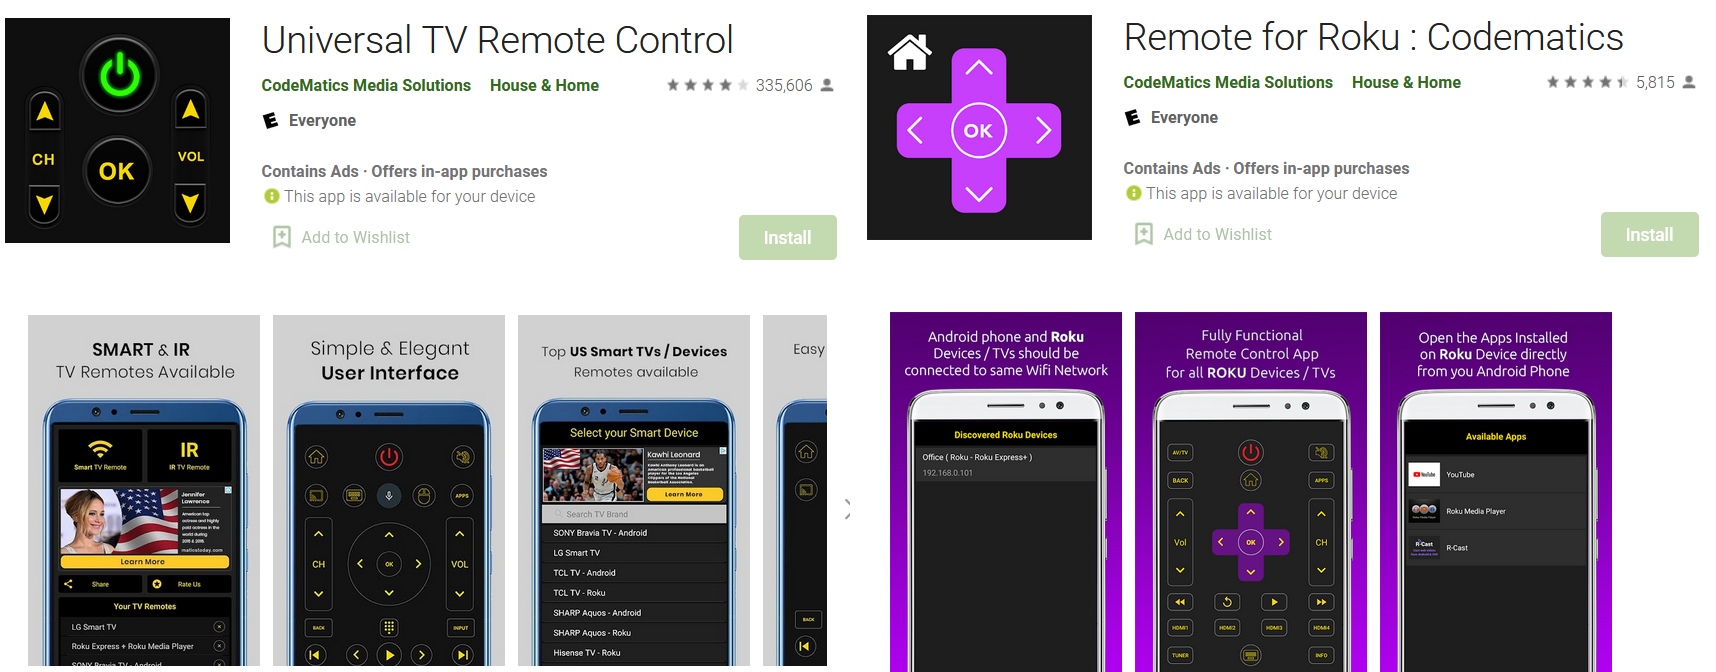 Popular Android apps with 142.5 million collective installs leak user data